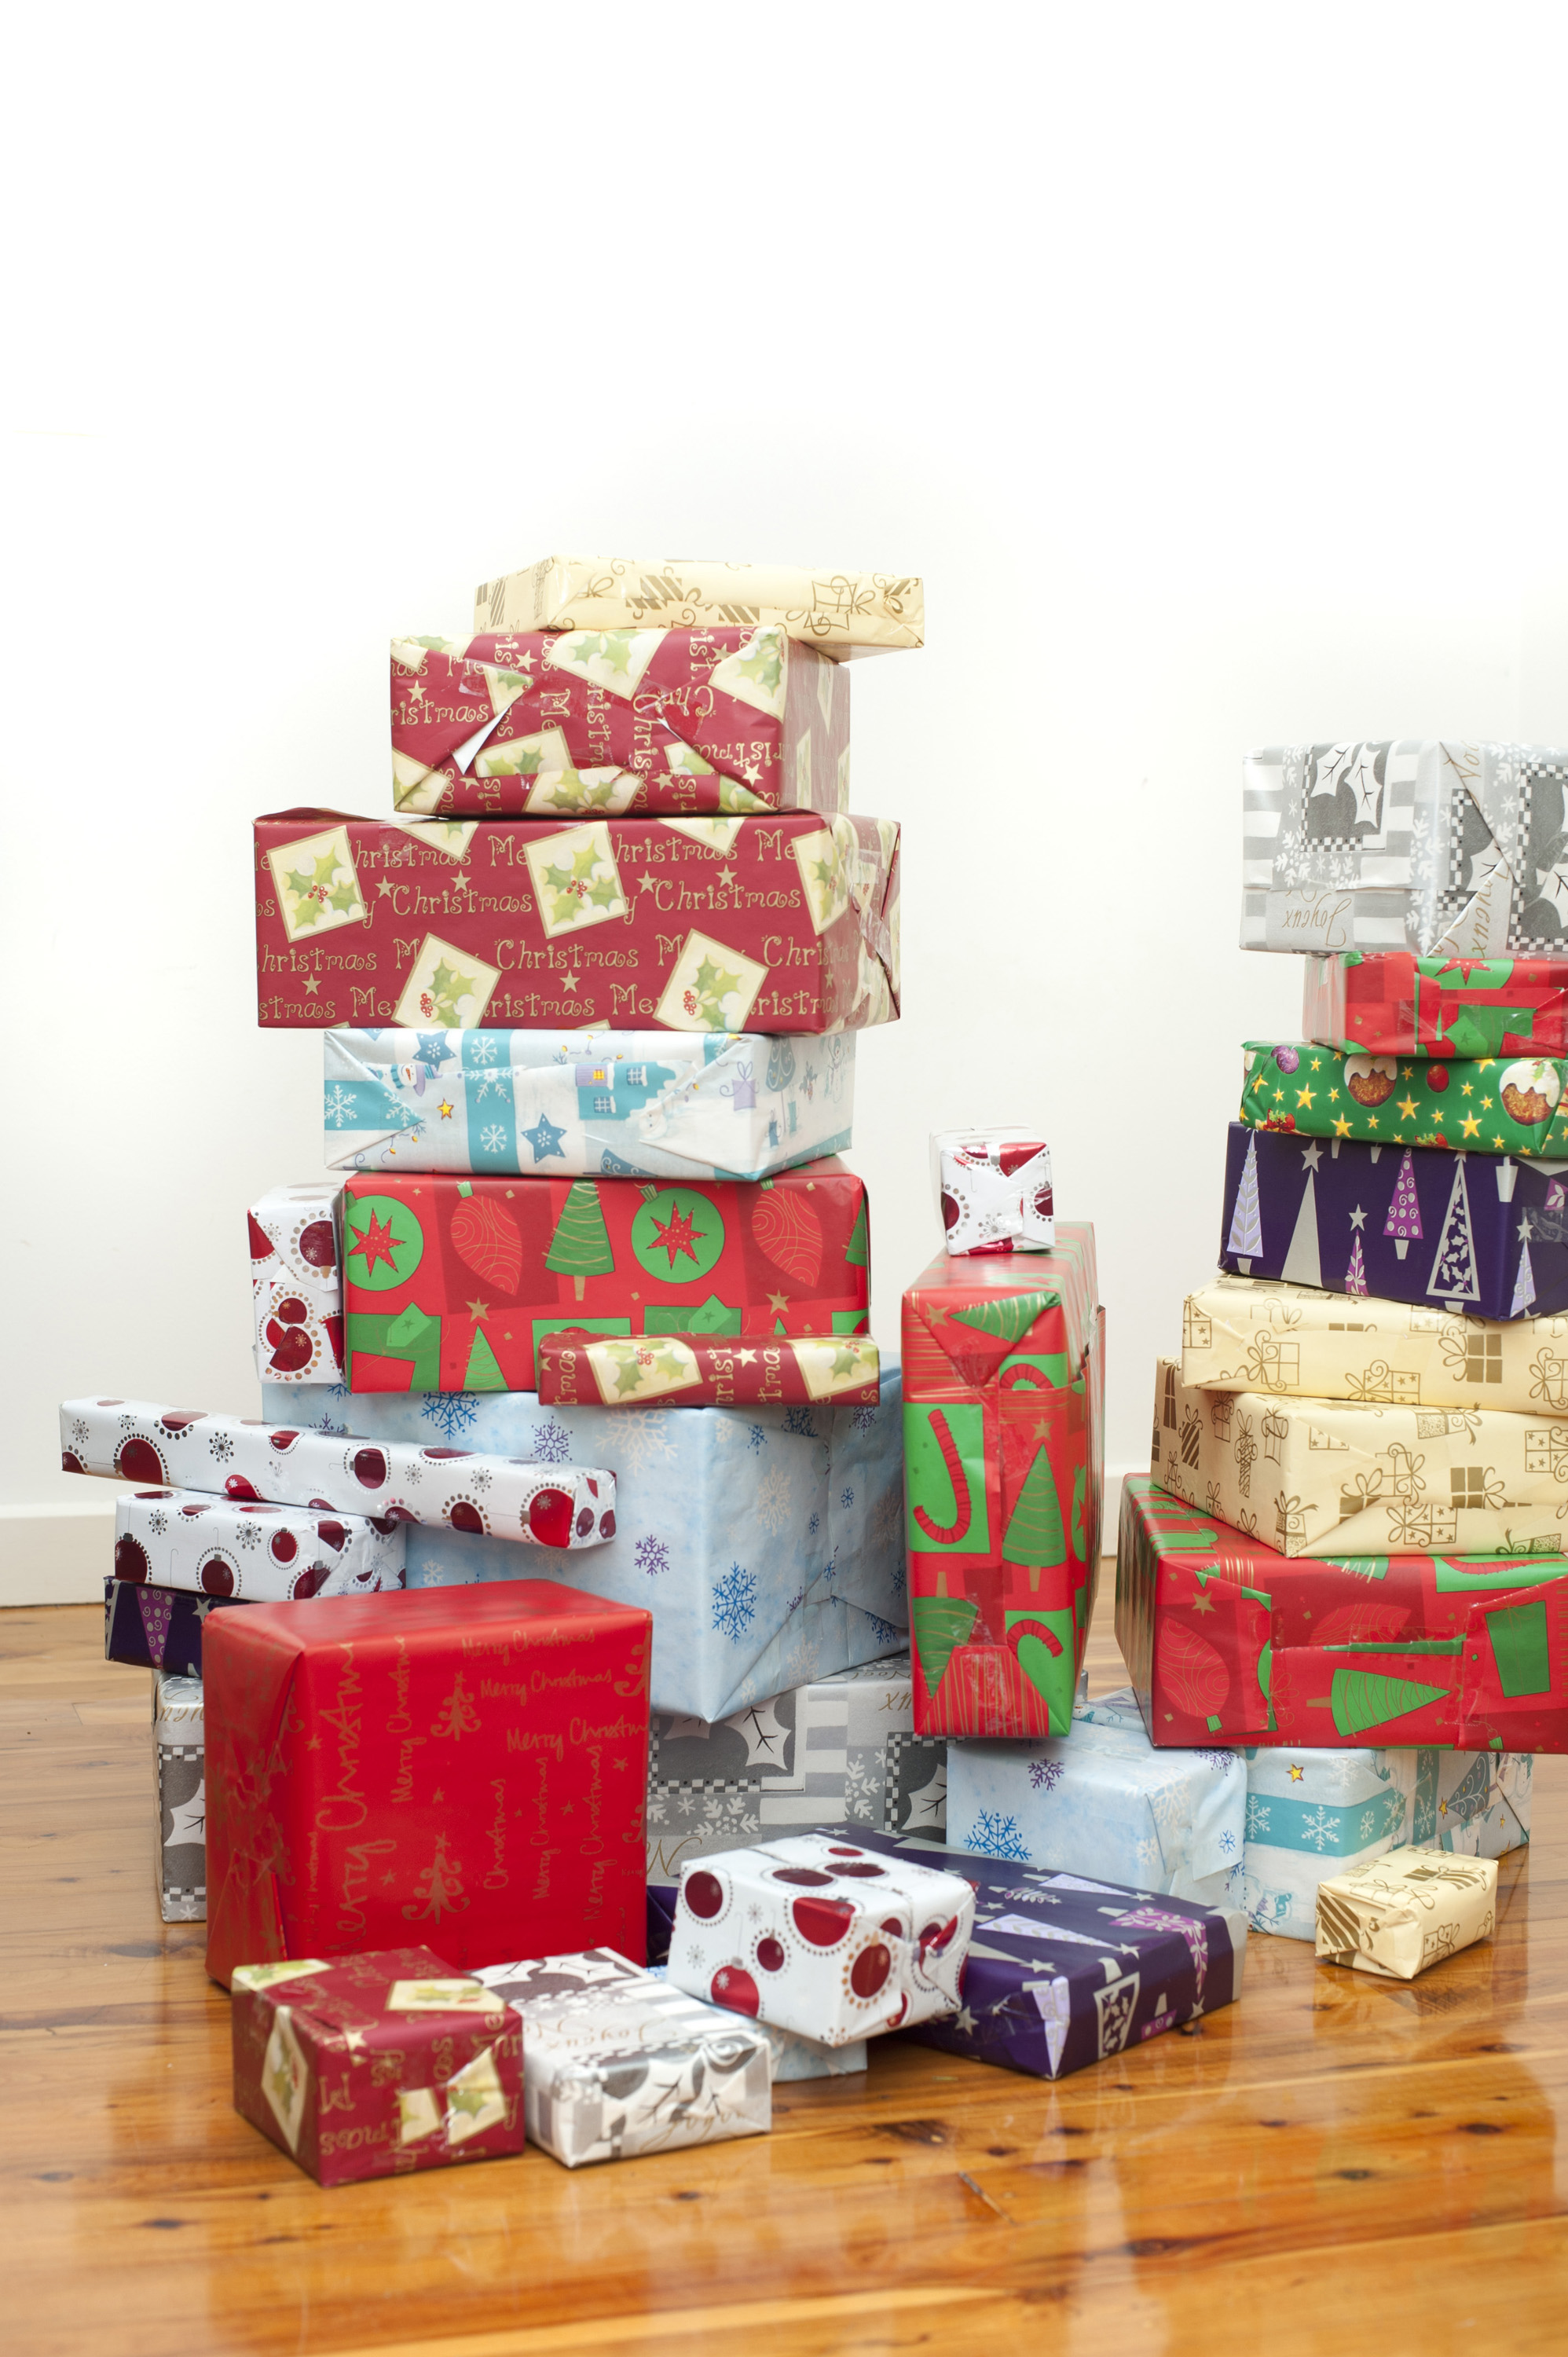 Stacks of multicoloured Christmas gifts wrapped in a variety of colourful paper with seasonal patterns standing on a hardwood floor in the house